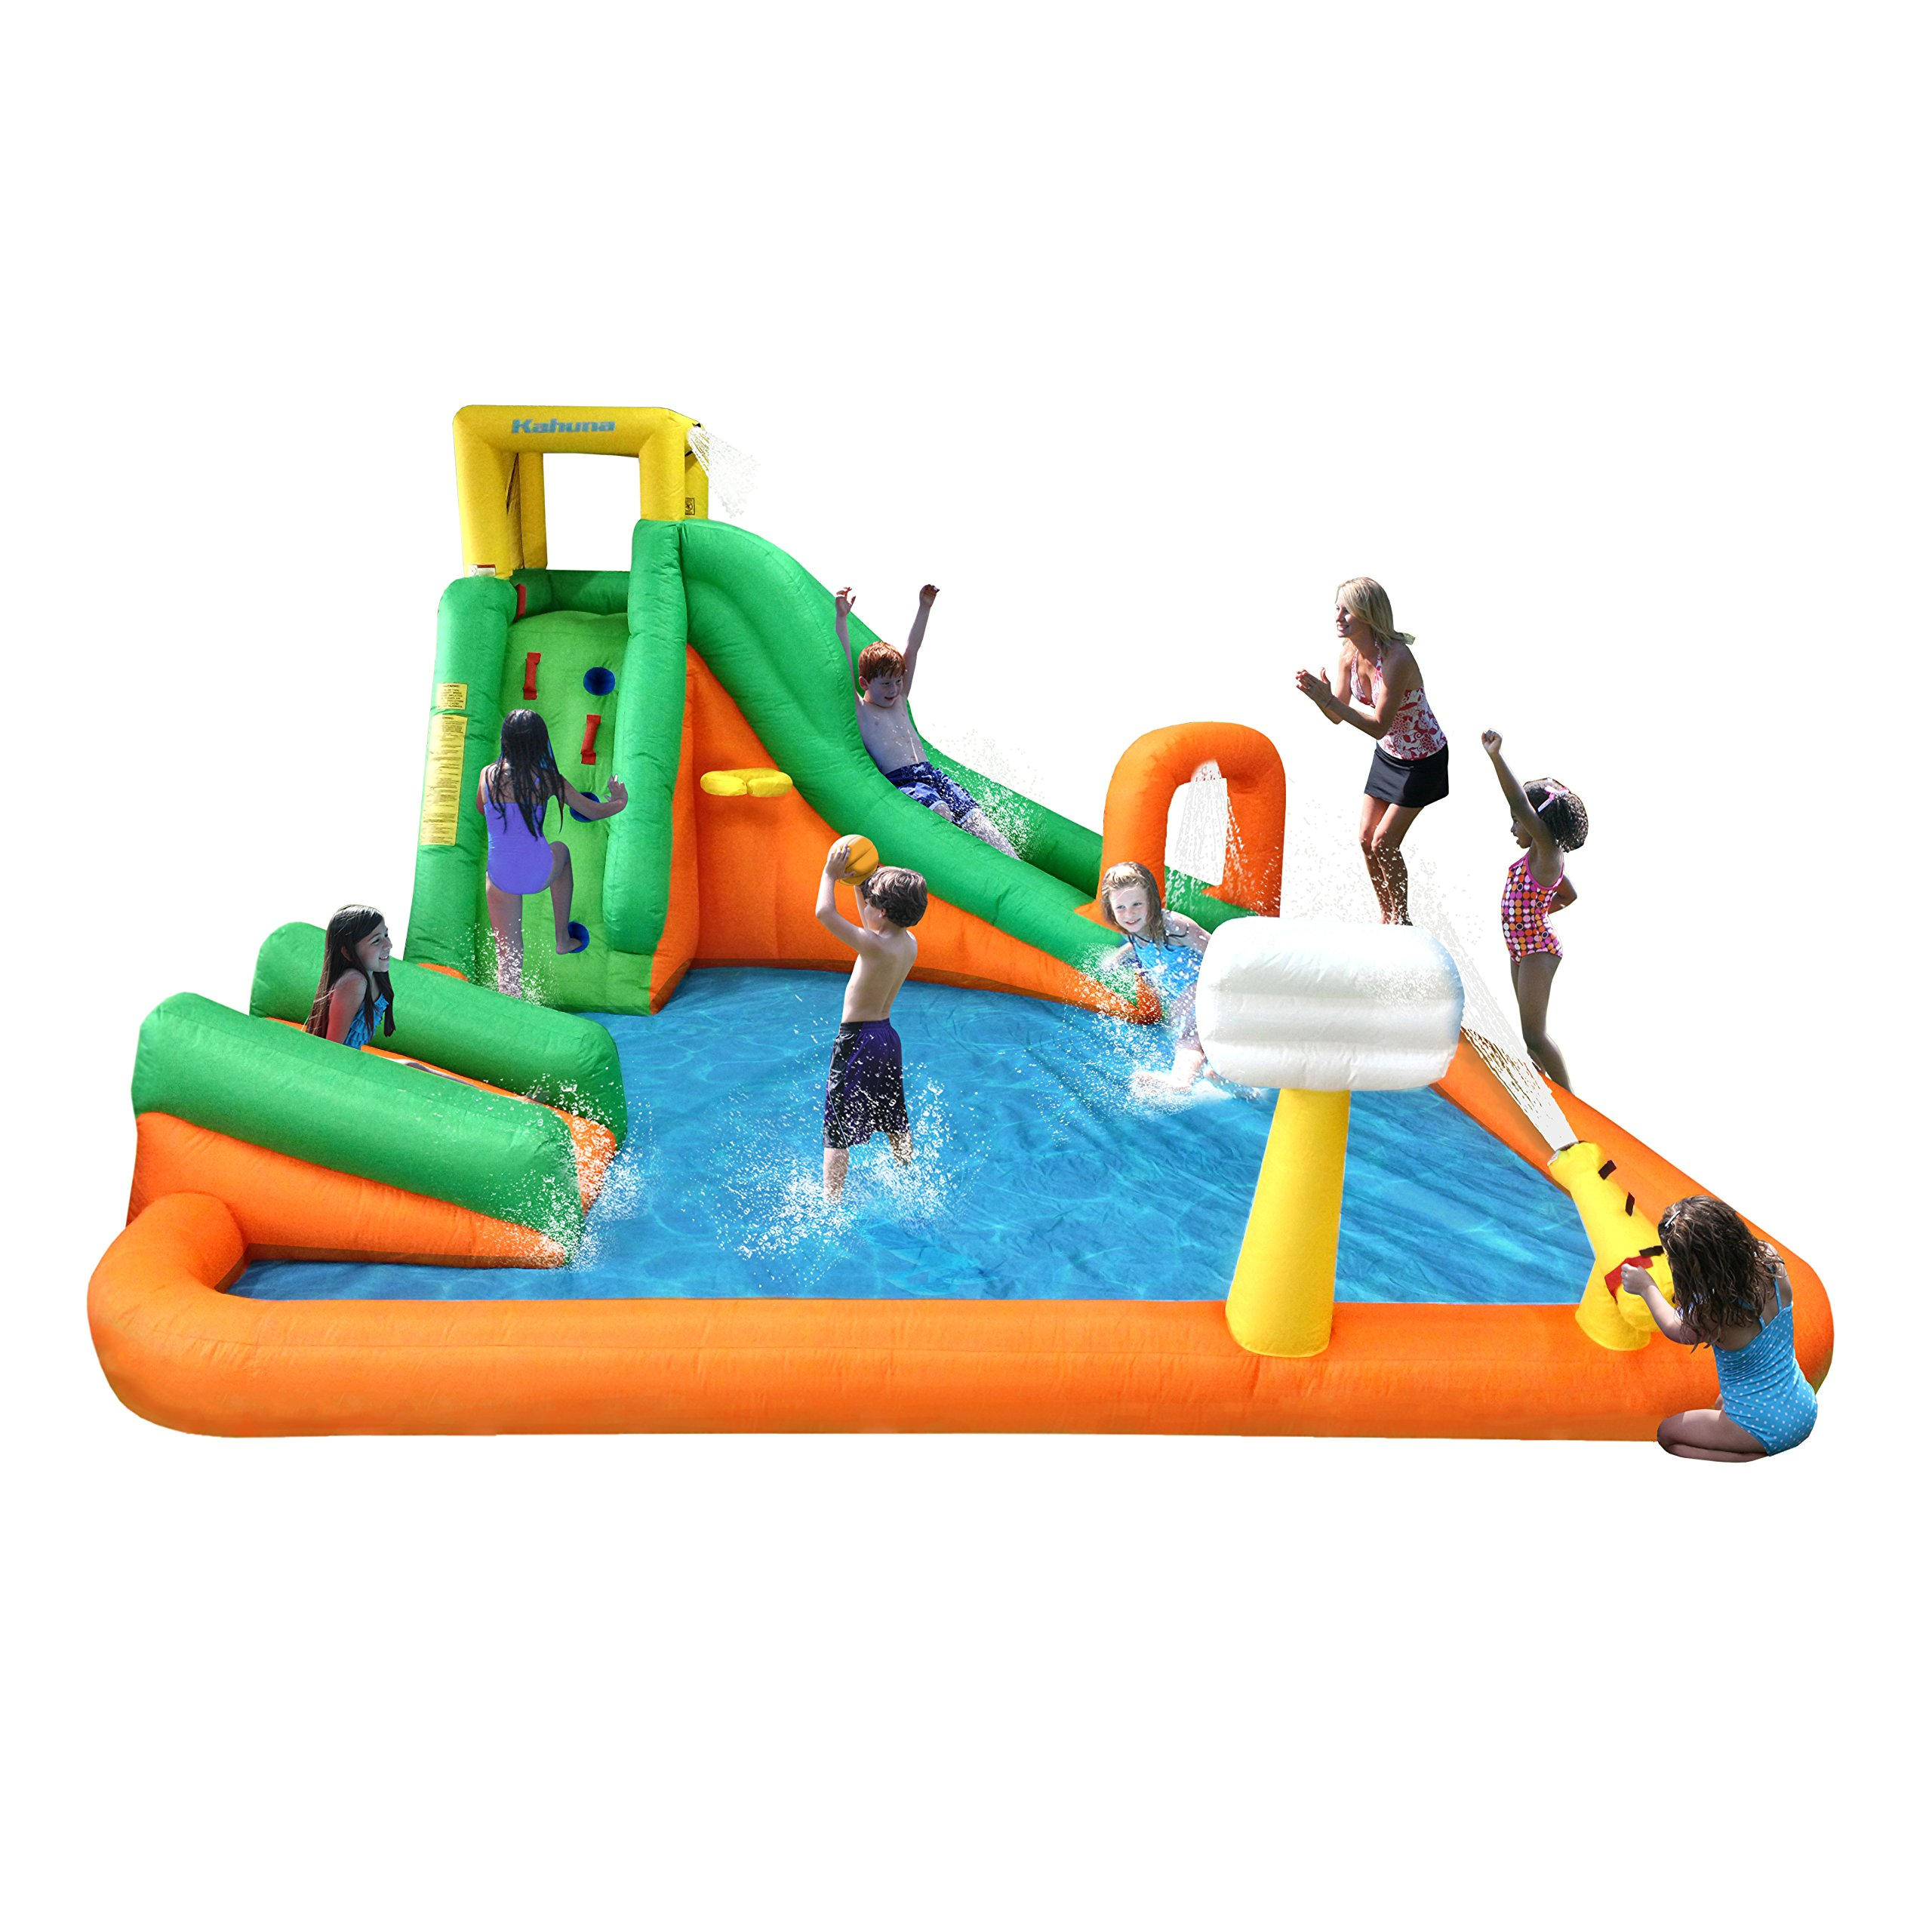 Magic Time Titan Falls with Junior Inflatable Water Slide, Green | 90729 by Lisongin